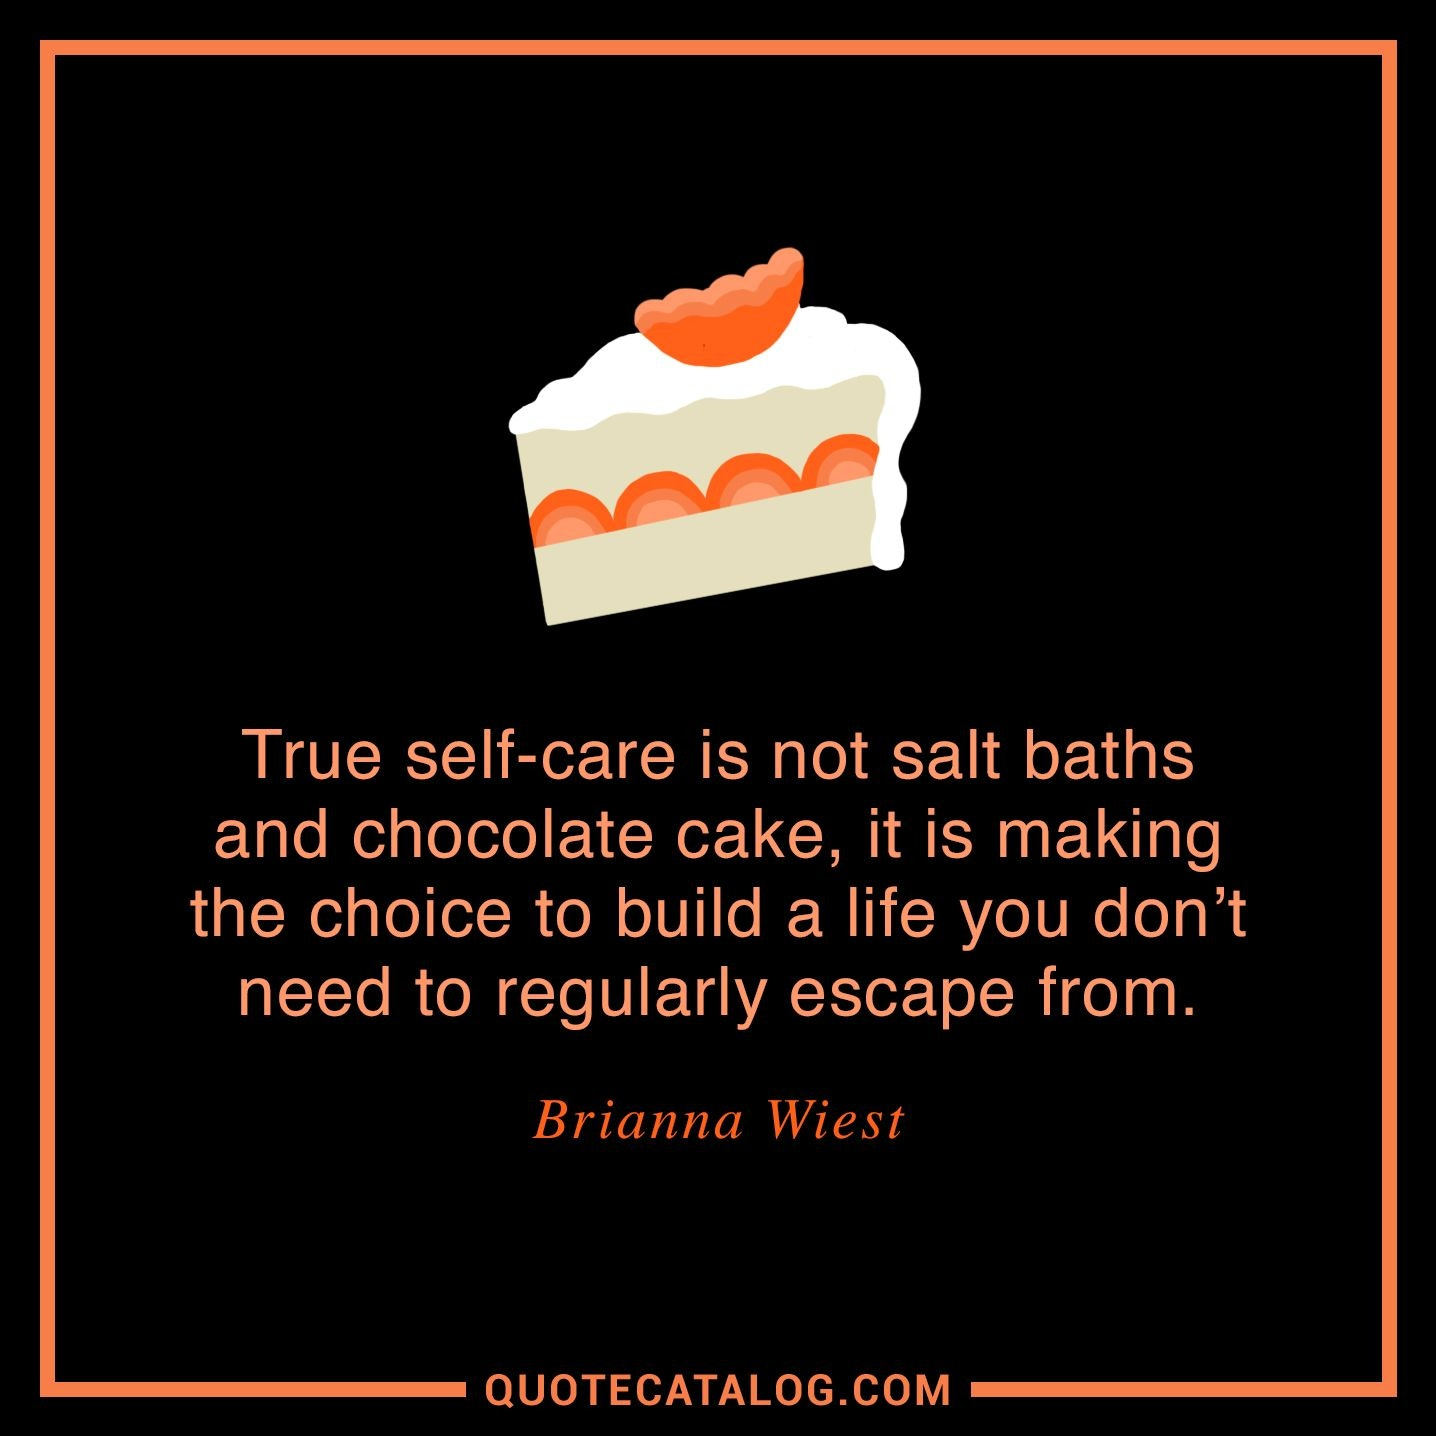 Faith True Selfcare Is Not Salt Baths And Chocolate Cake It Is Making The Choice To Build Life You Dont Need To Regularly Escape From Quote Catalog 300 Top Inspirational Quotes Quote Pictures Quote Catalog